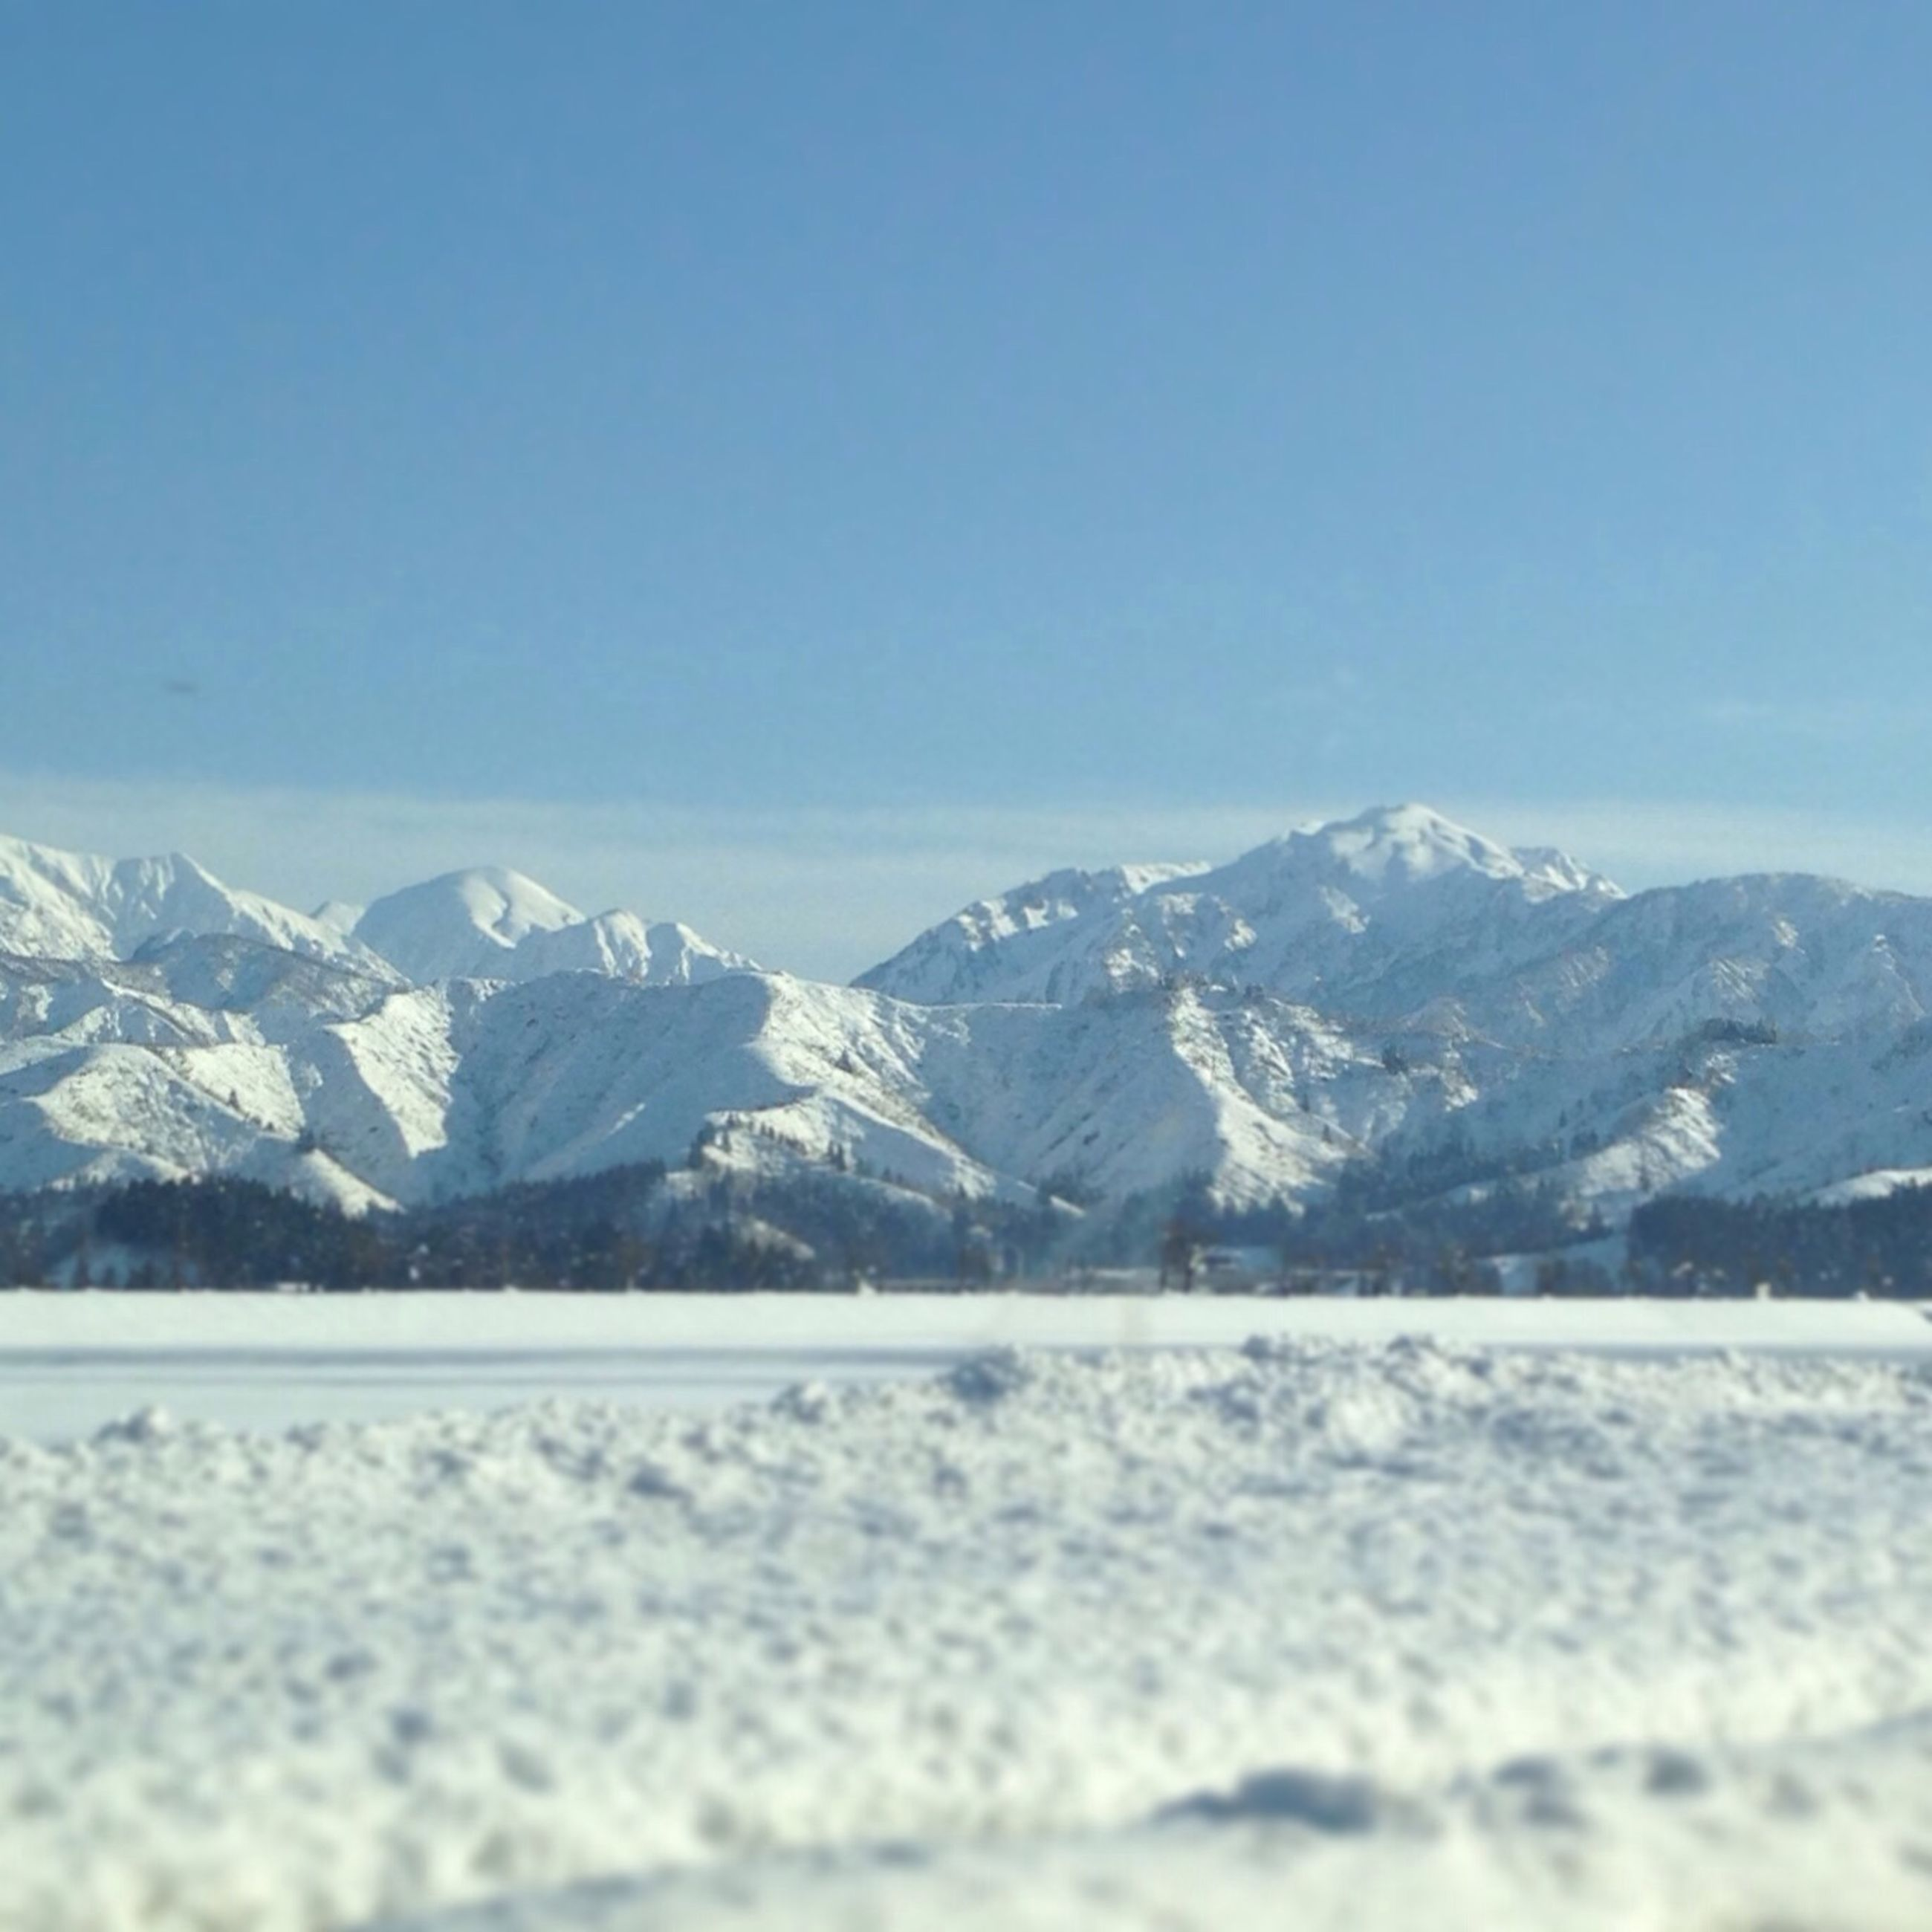 snow, winter, cold temperature, mountain, season, clear sky, mountain range, tranquil scene, tranquility, scenics, snowcapped mountain, copy space, beauty in nature, landscape, weather, nature, covering, blue, frozen, snowcapped